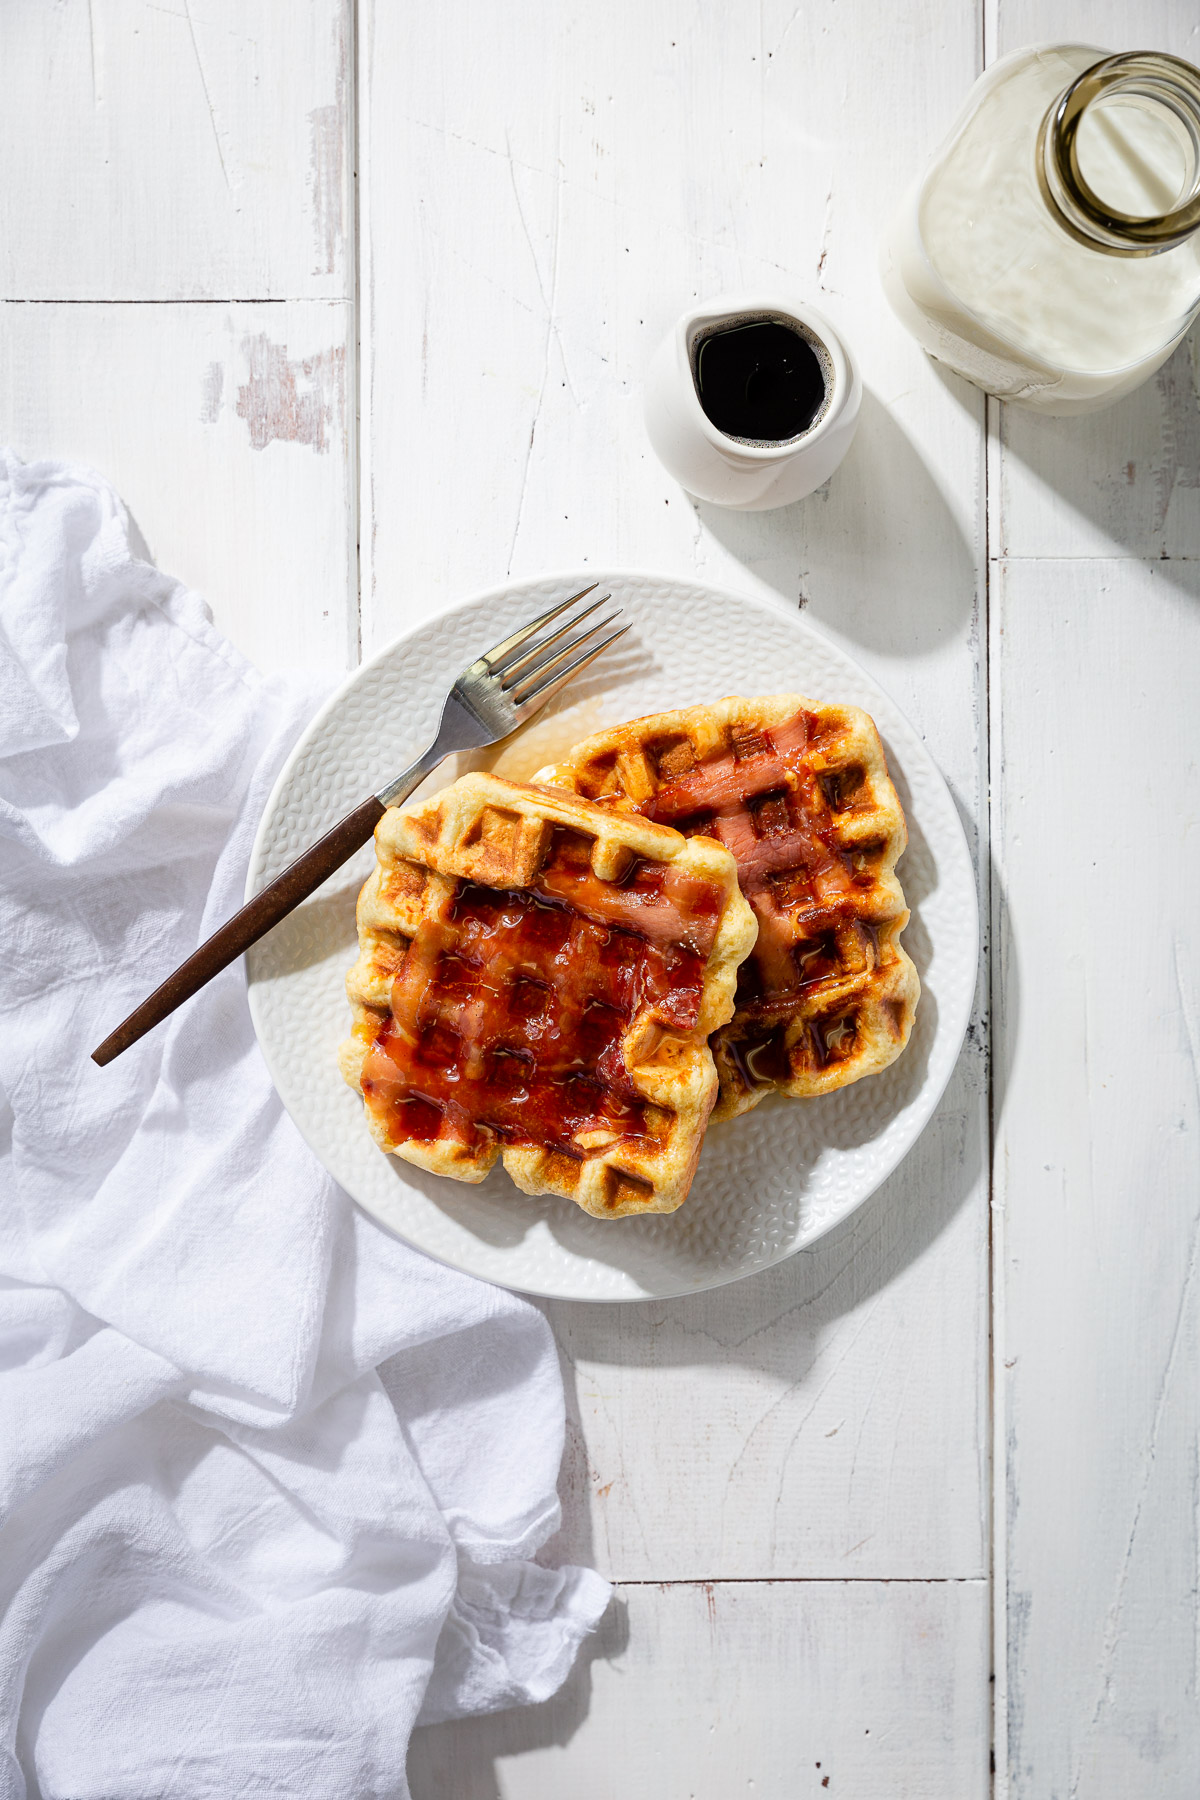 Prosciutto waffles on a white plate with a small pitcher of syrup, a bottle of milk, and white napkin.